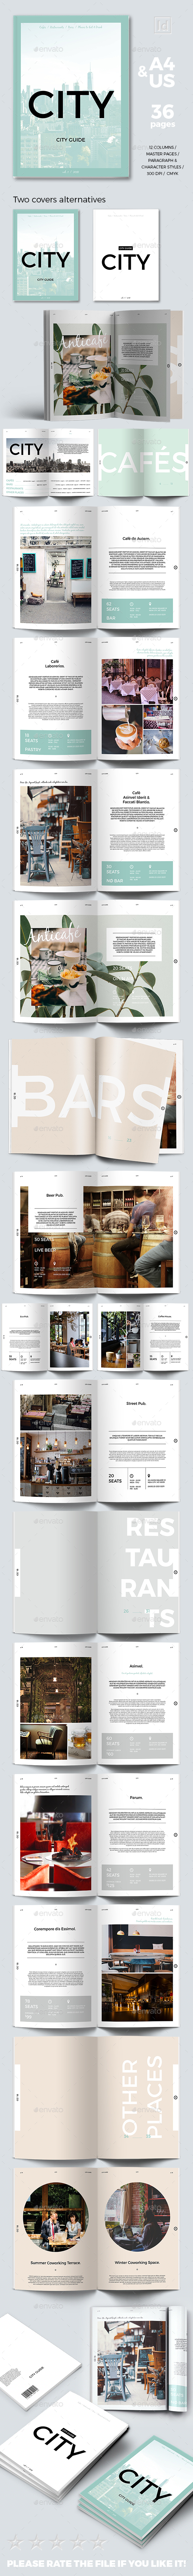 City Guide Template - Magazines Print Templates